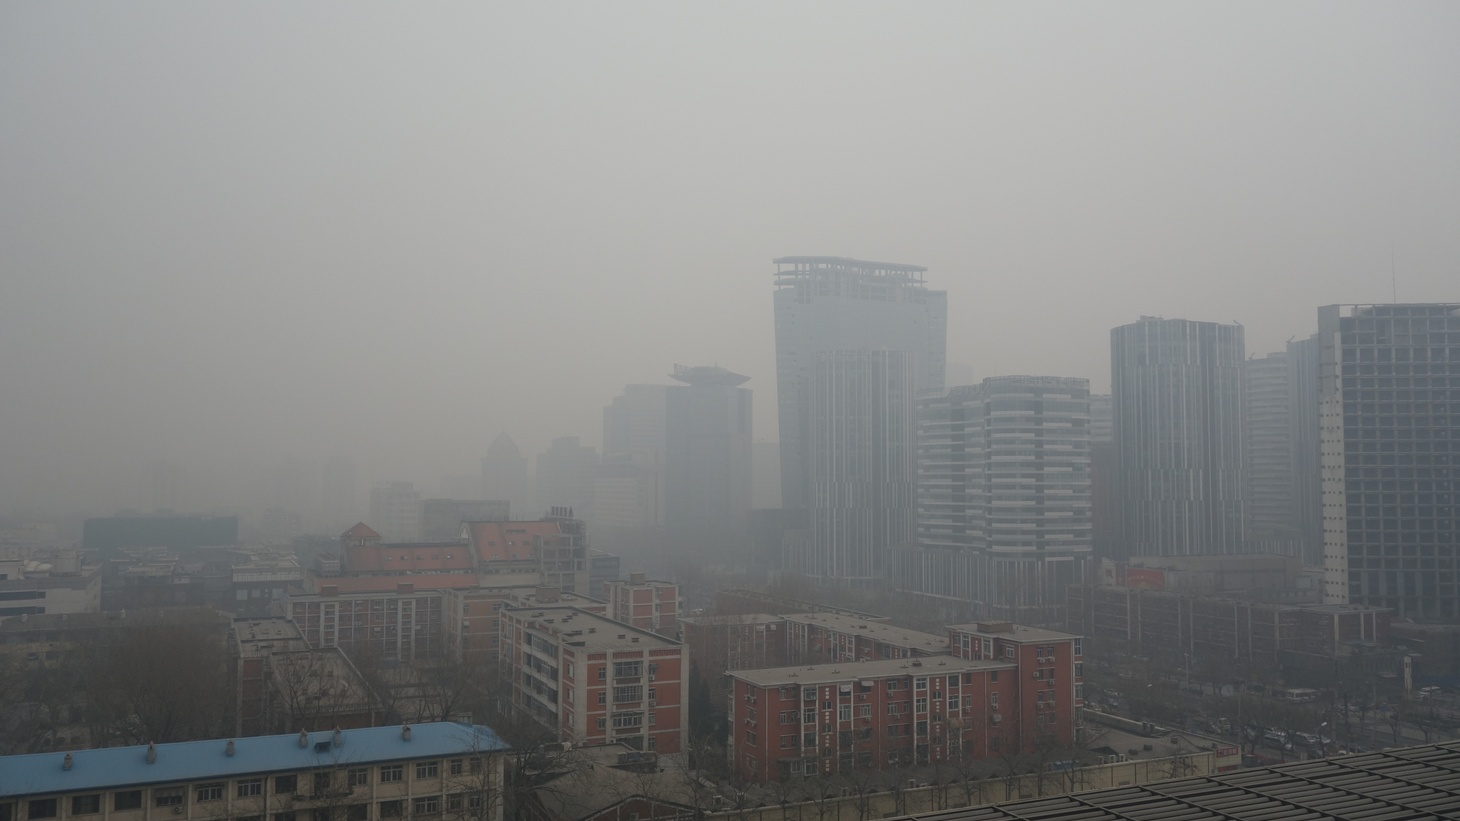 Air pollution in Sanlitun, Beijing, China